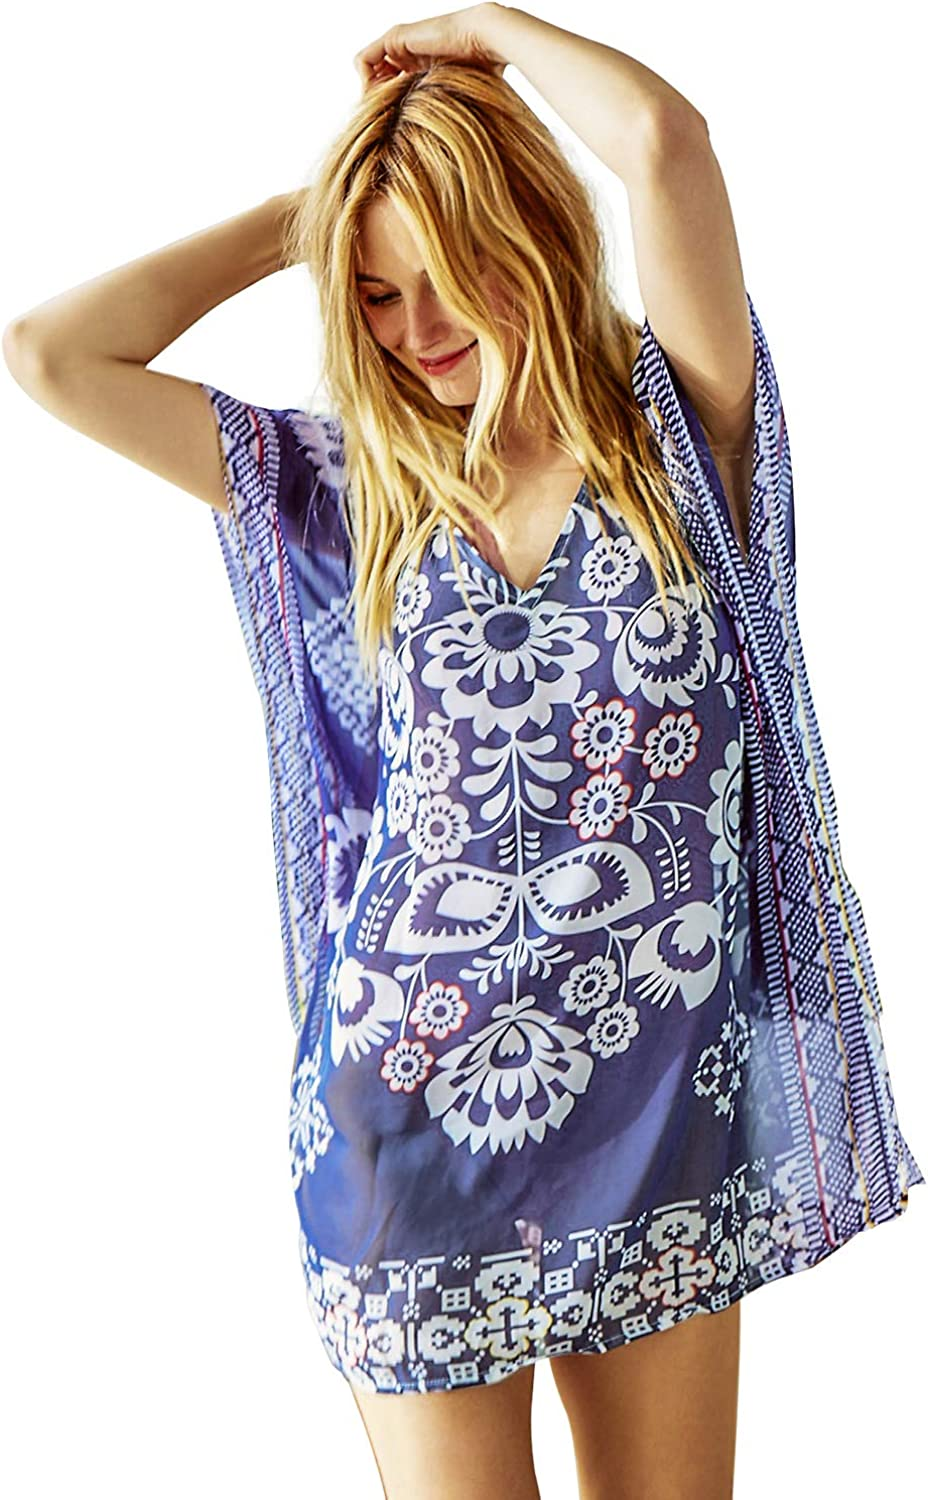 CUPSHE Women's Navy Blue Half Sleeve Floral Print Cover Up